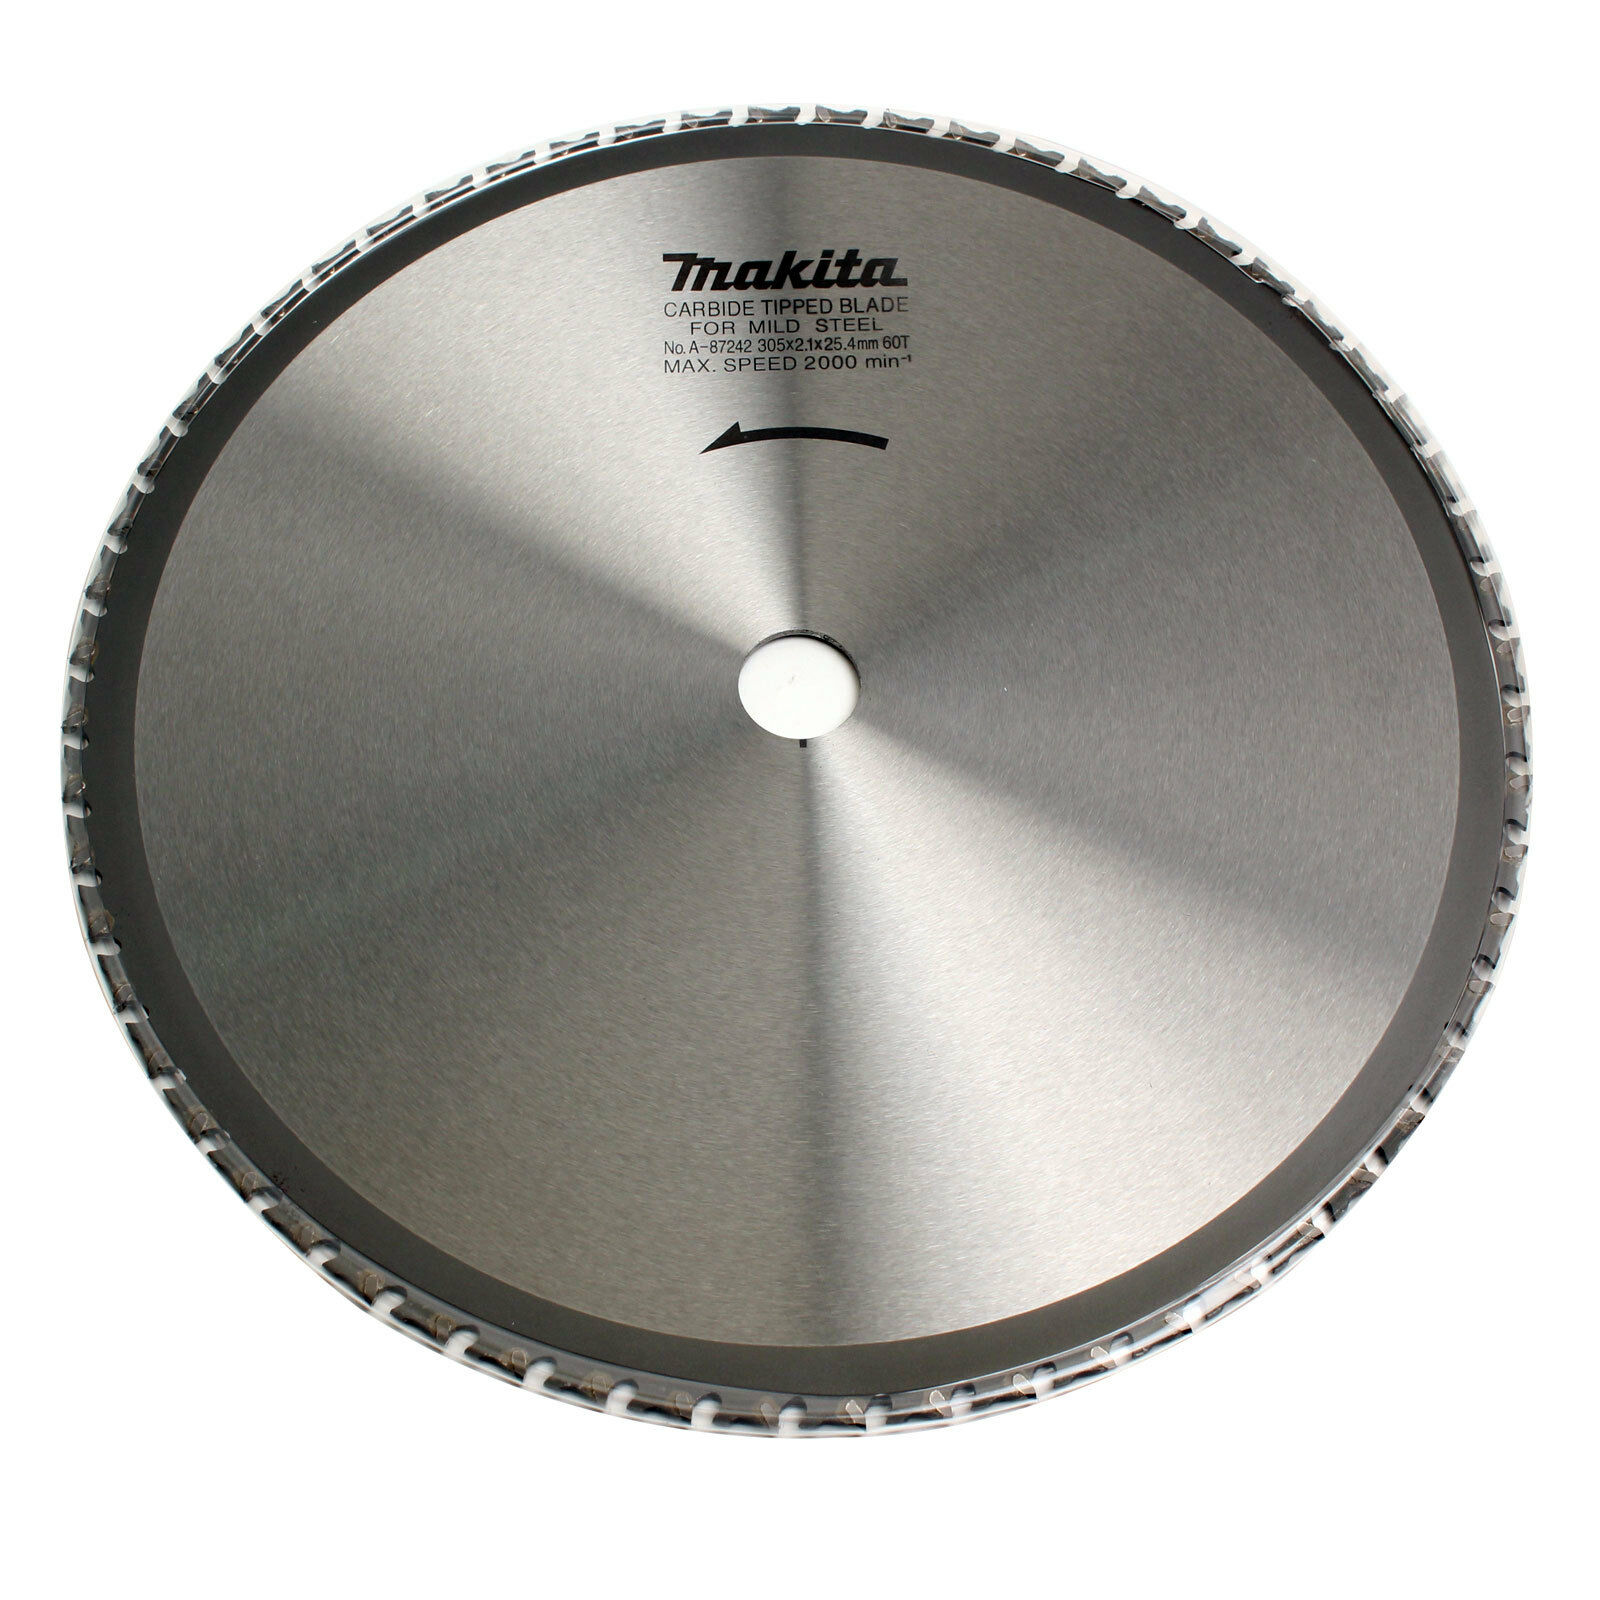 Makita A-87242 Tipped Saw Blade For Mild Steel 60T 12inch 305mm